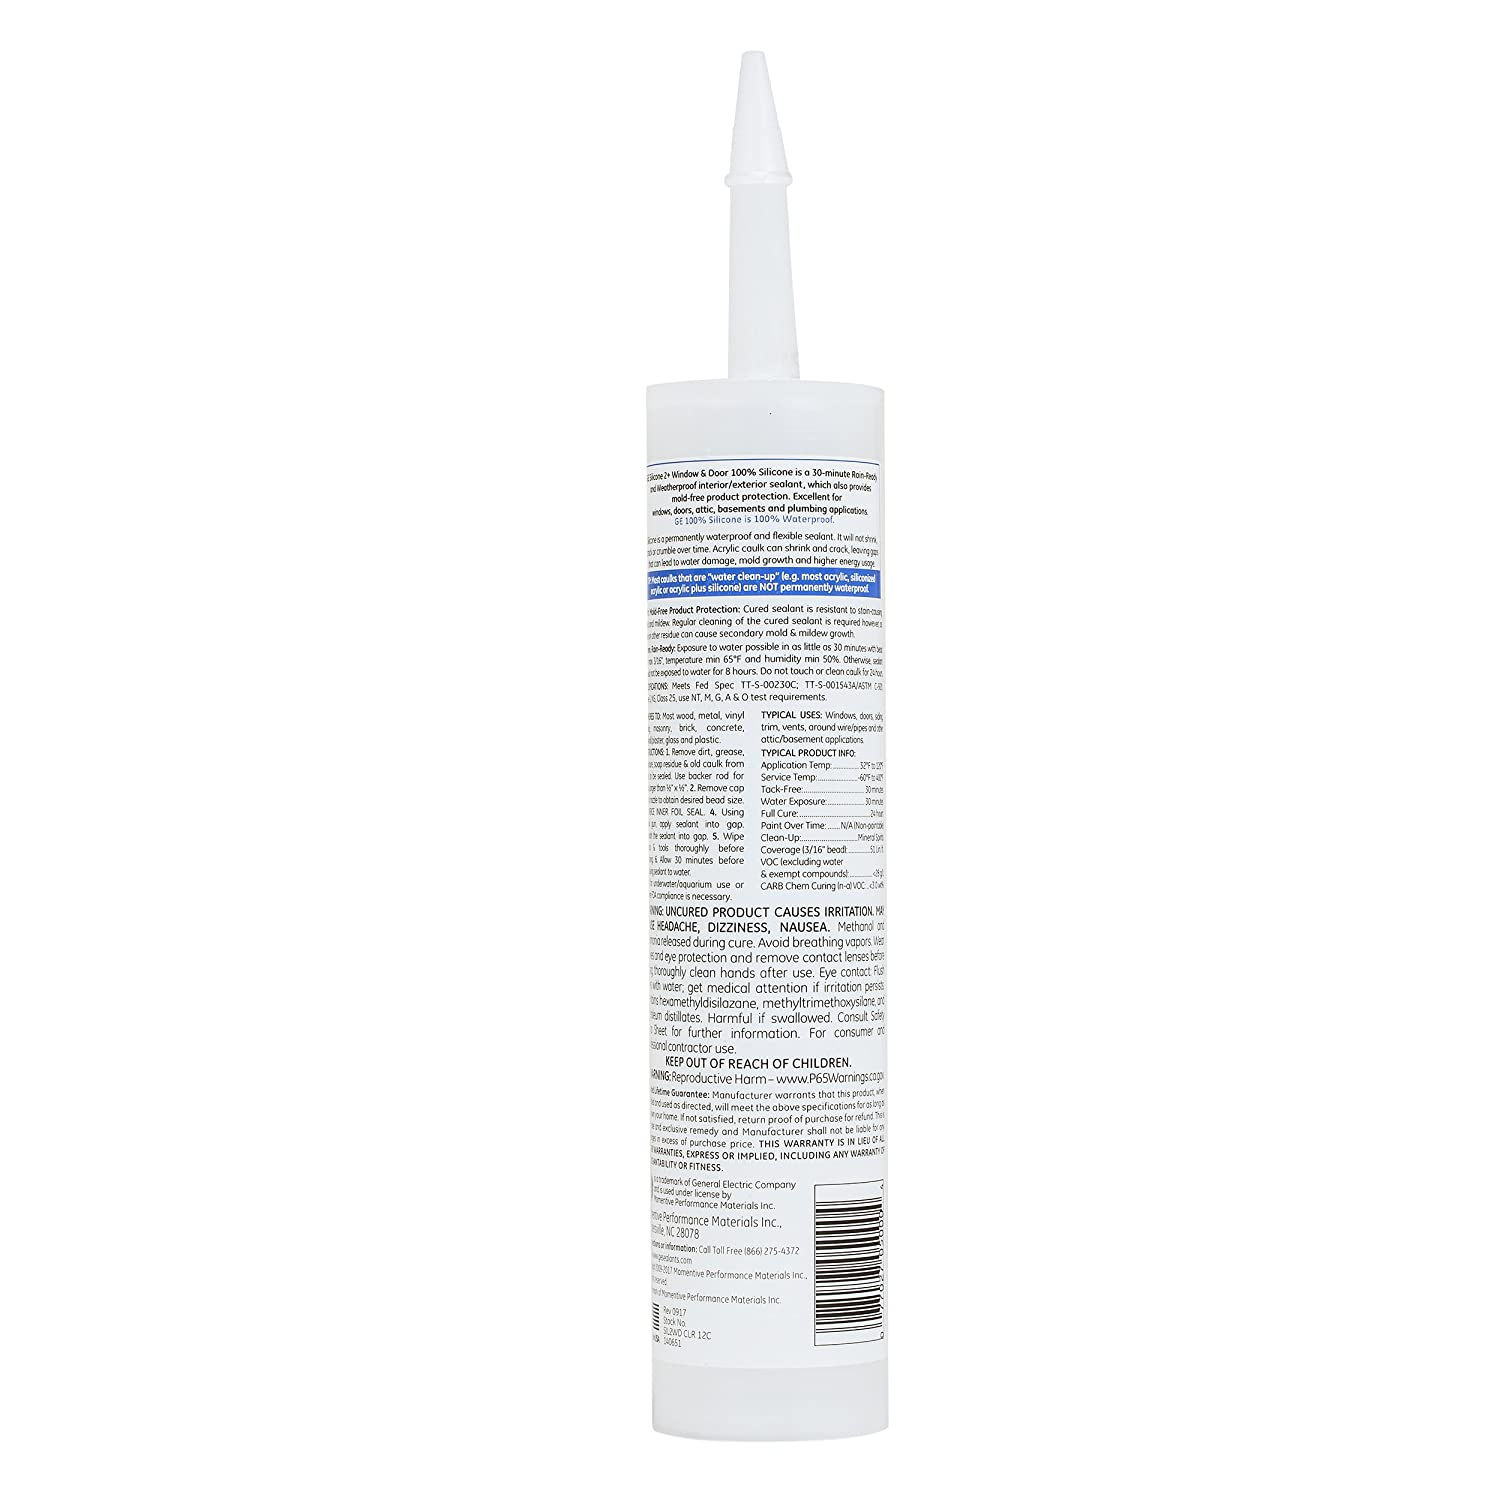 GE Momentive Performance Materials GE Silicone 2 Tube, GE5000 10 1 OZ,  Clear, Window & Door Caulk, 10 1oz